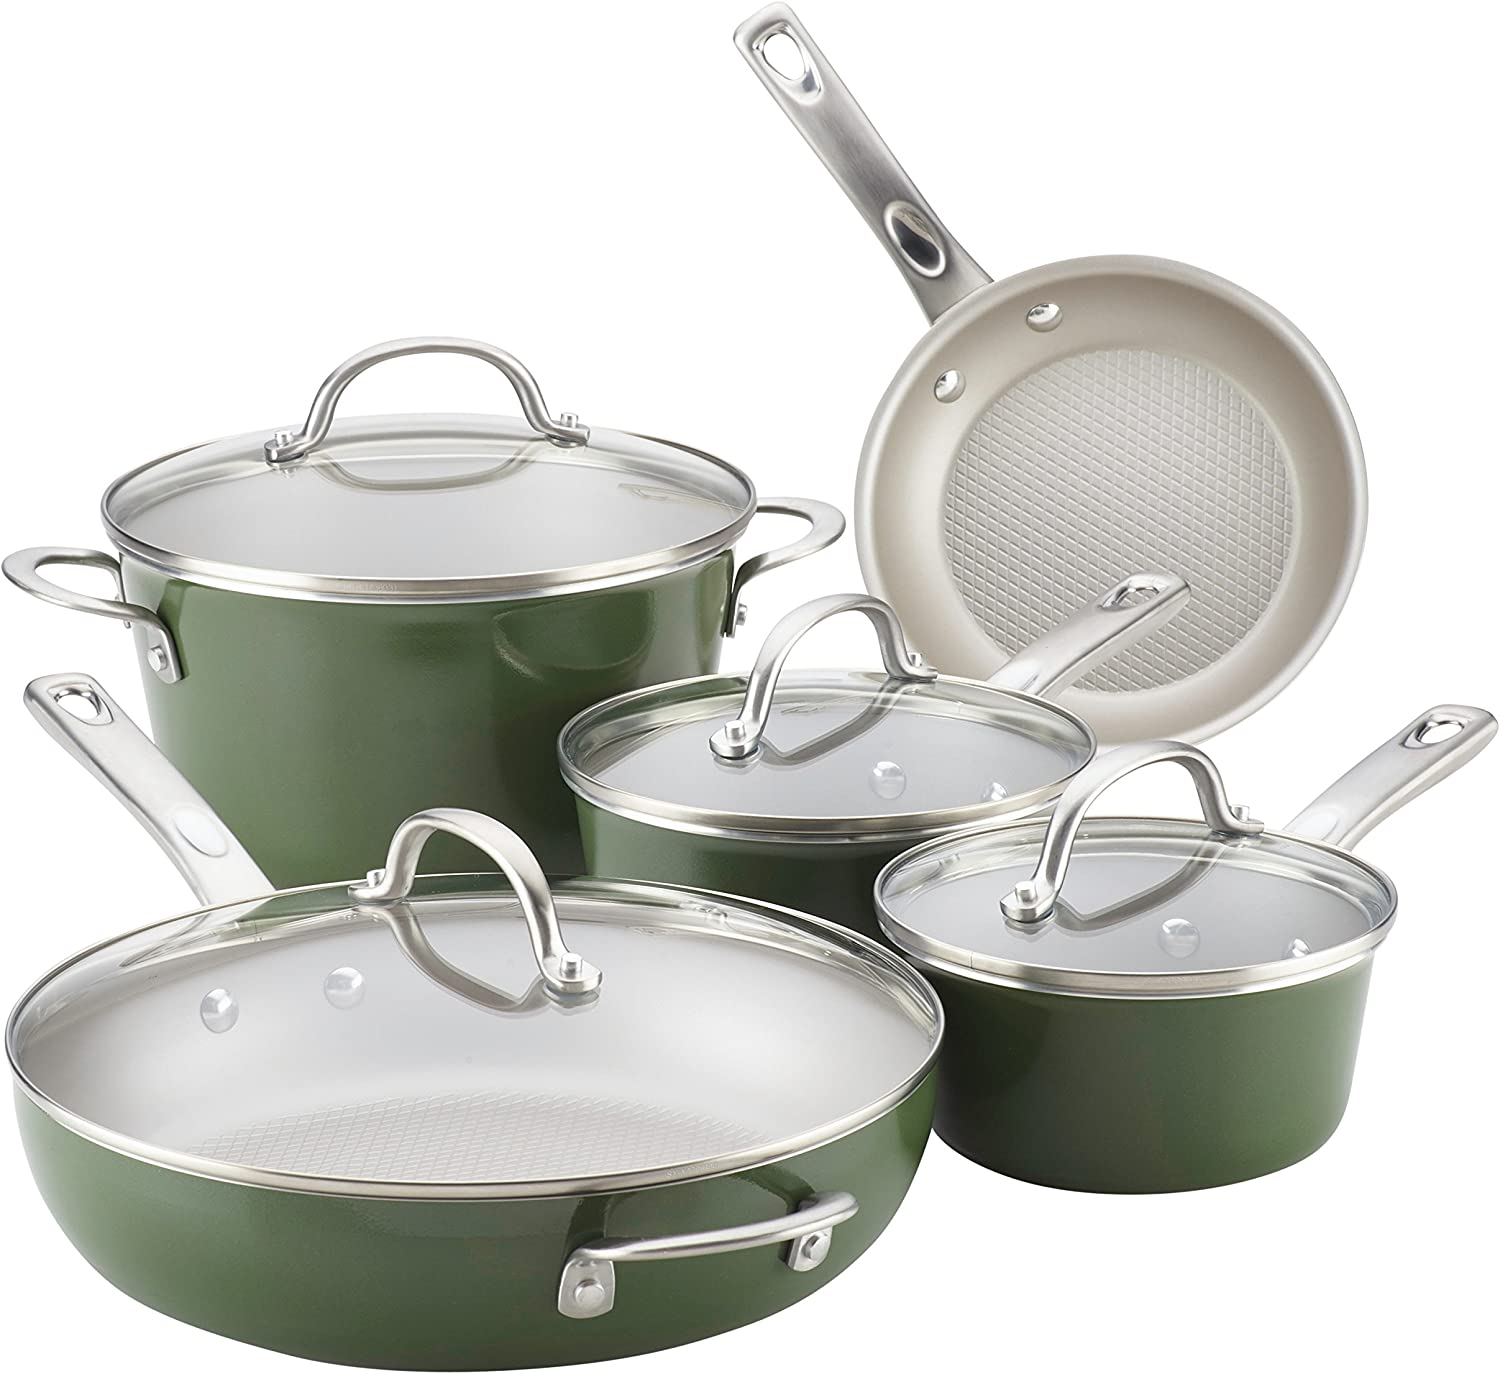 Ayesha Curry Home Collection Nonstick Cookware Pots and Pans Set, 9 Piece, Basil Green